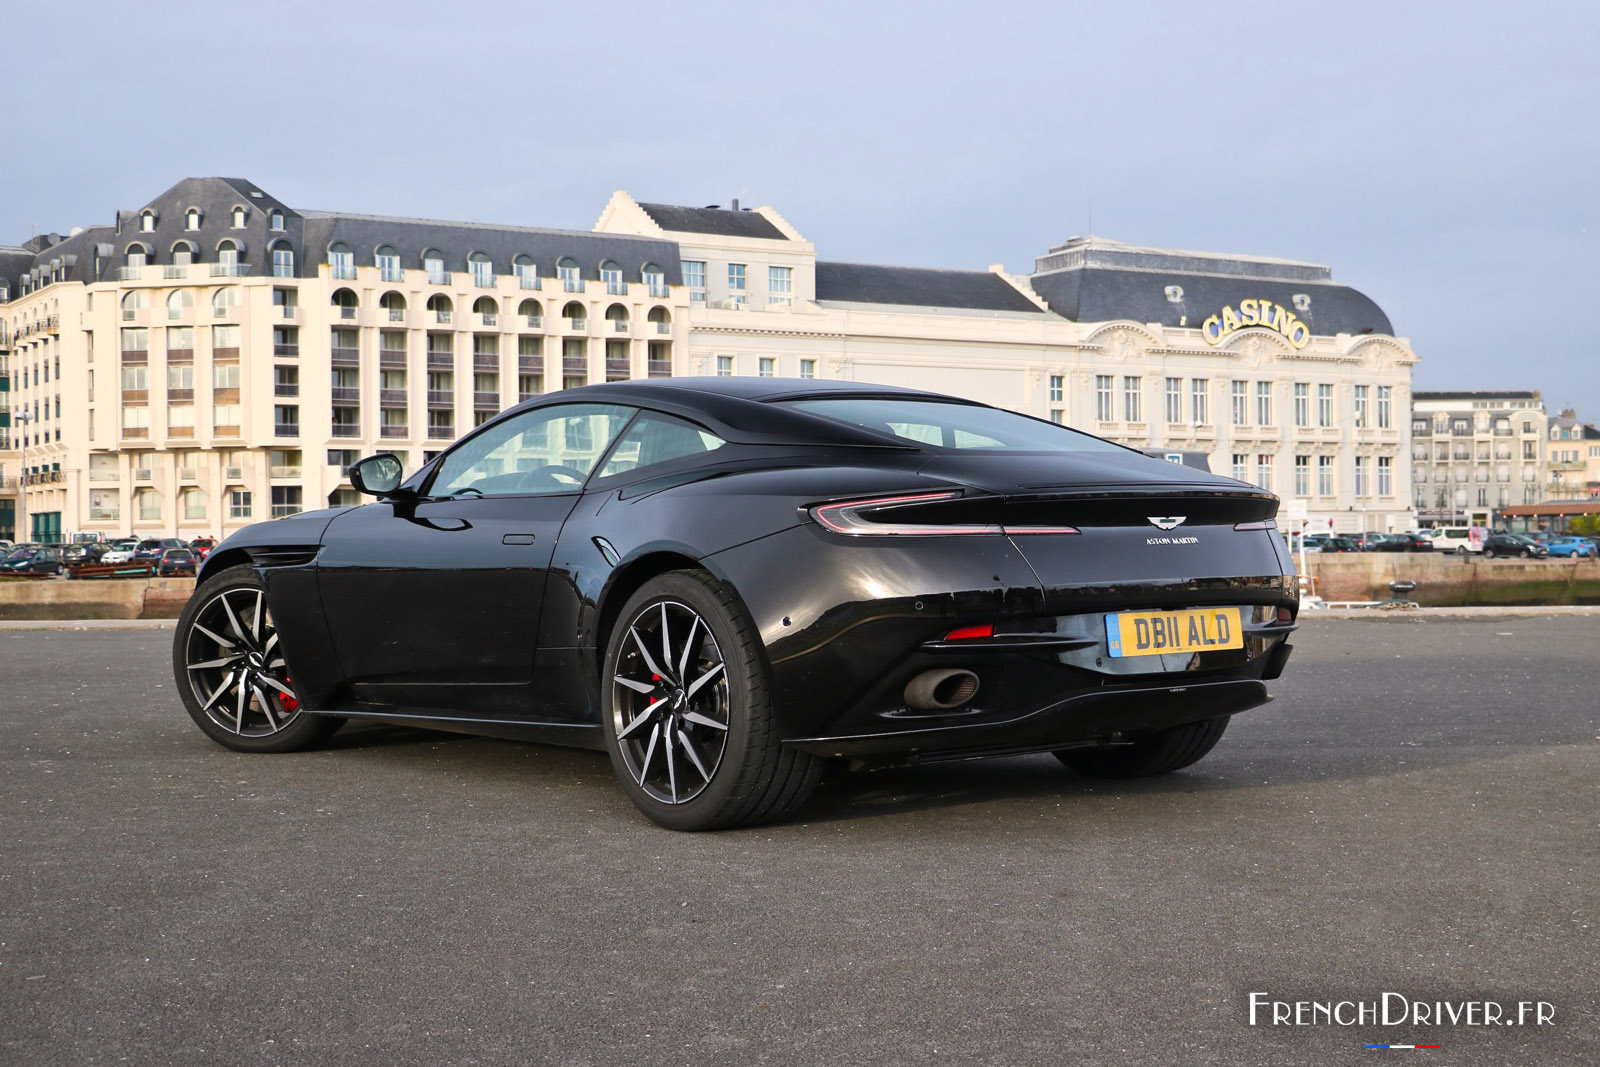 essai aston martin db11 v8 la gt dans toute sa splendeur french driver. Black Bedroom Furniture Sets. Home Design Ideas